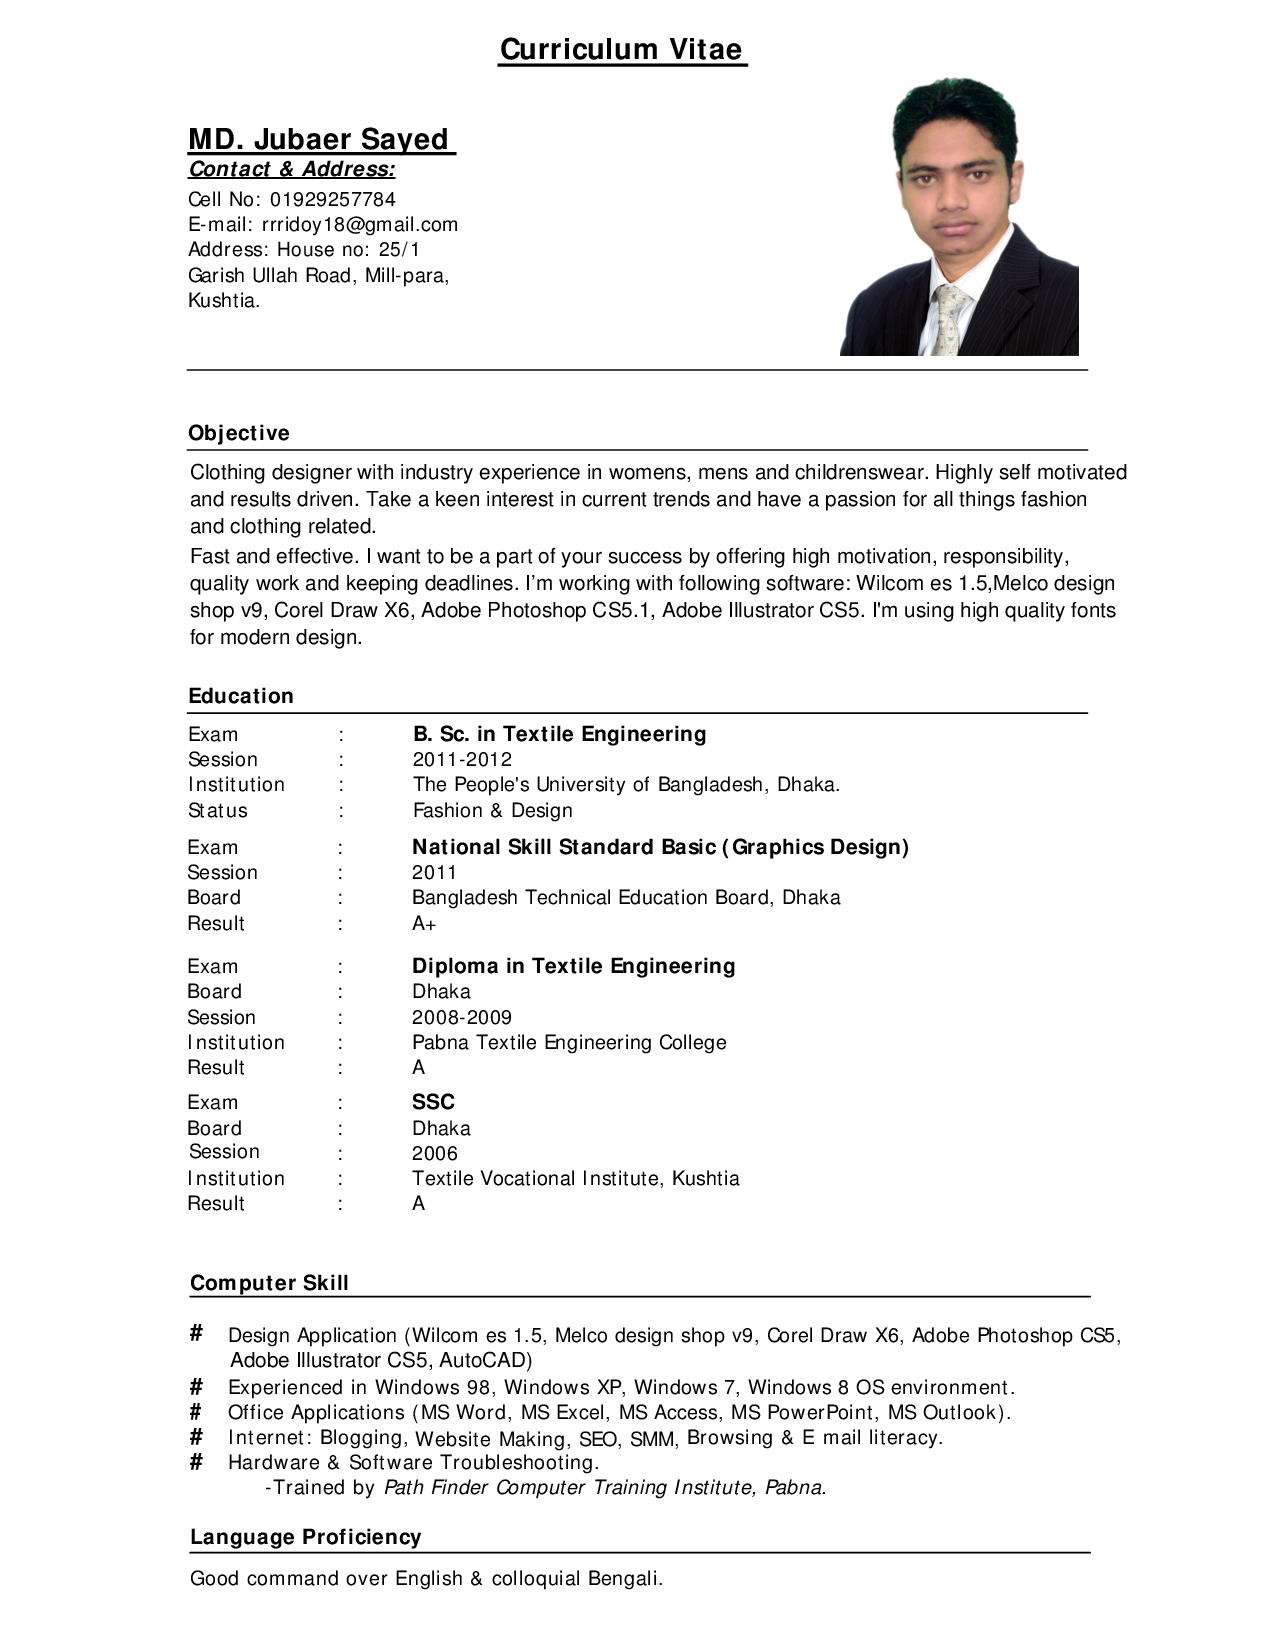 Few Tips On Writing A Perfect Curriculum Vitae | Curriculum Vitae ...